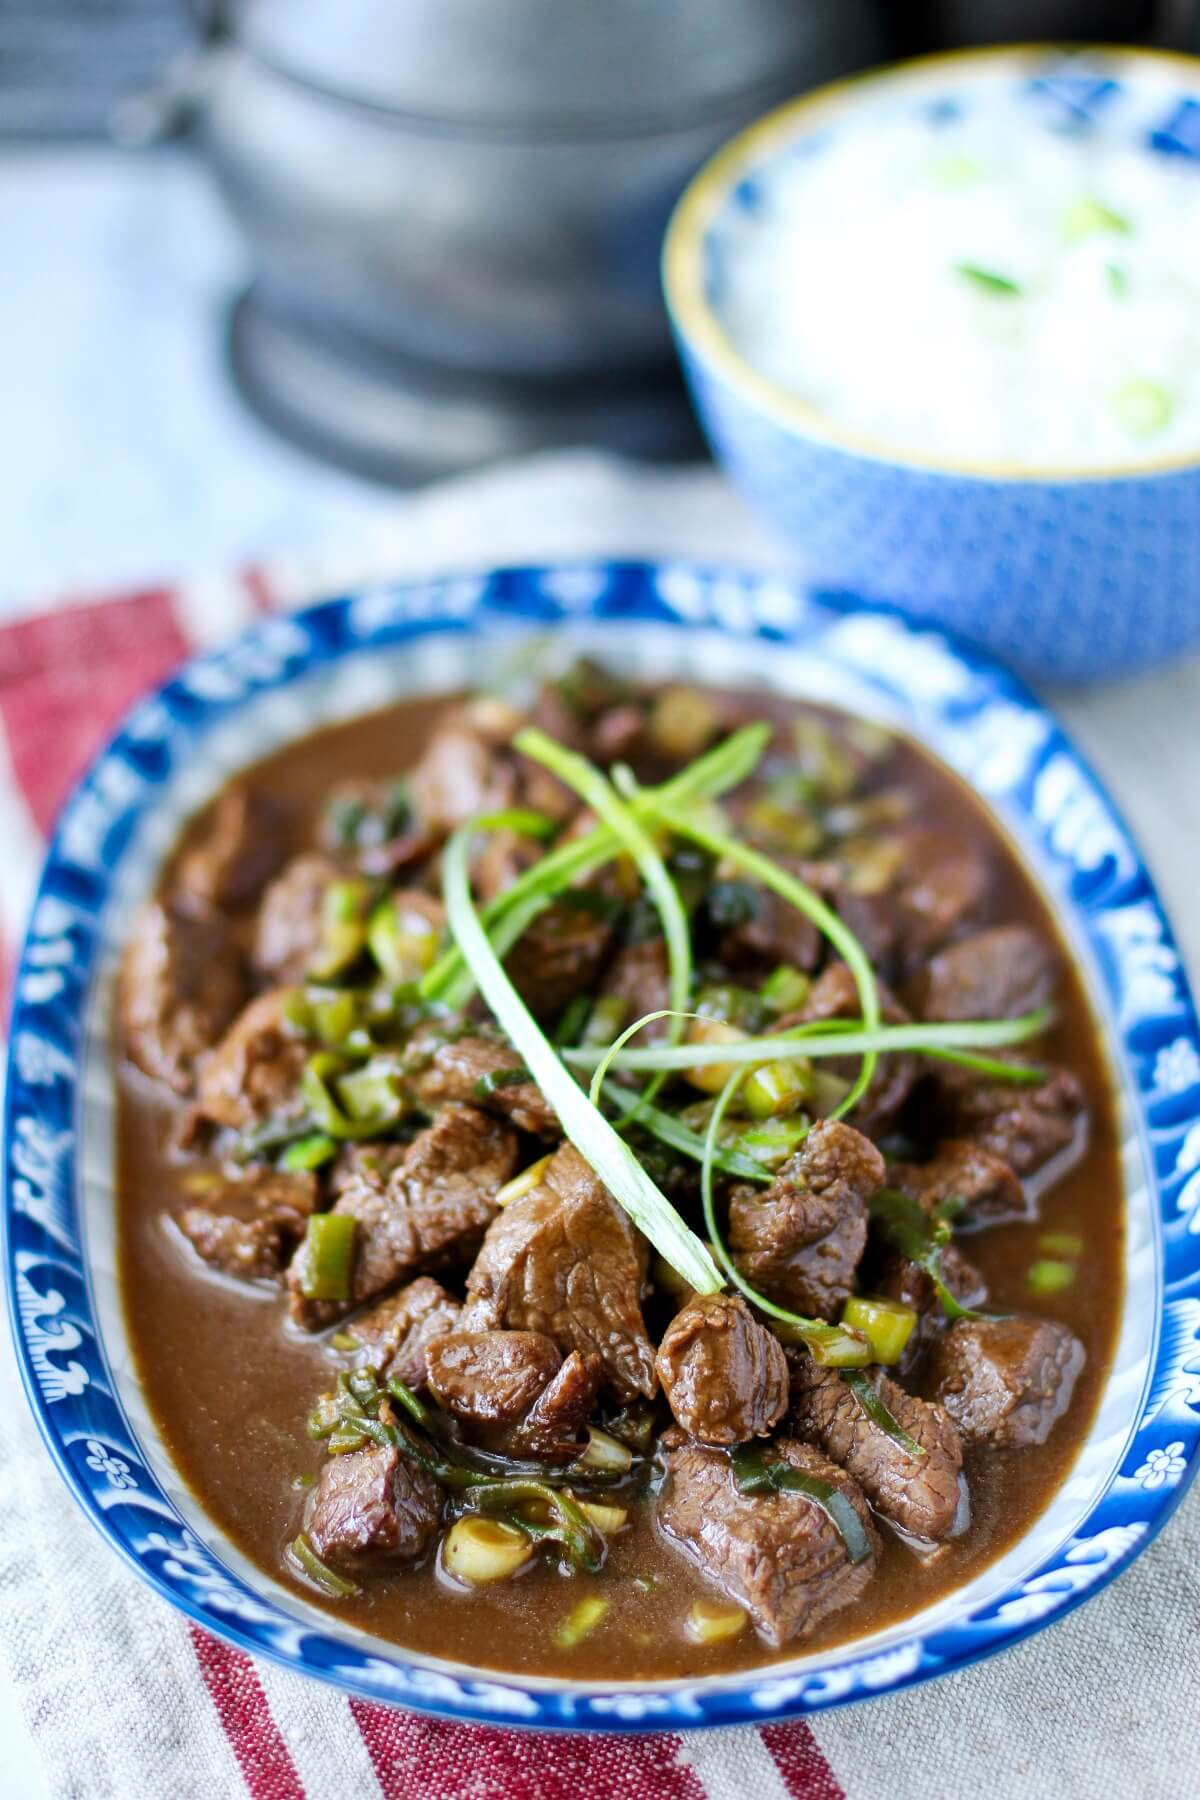 Platter of mongolian lamb